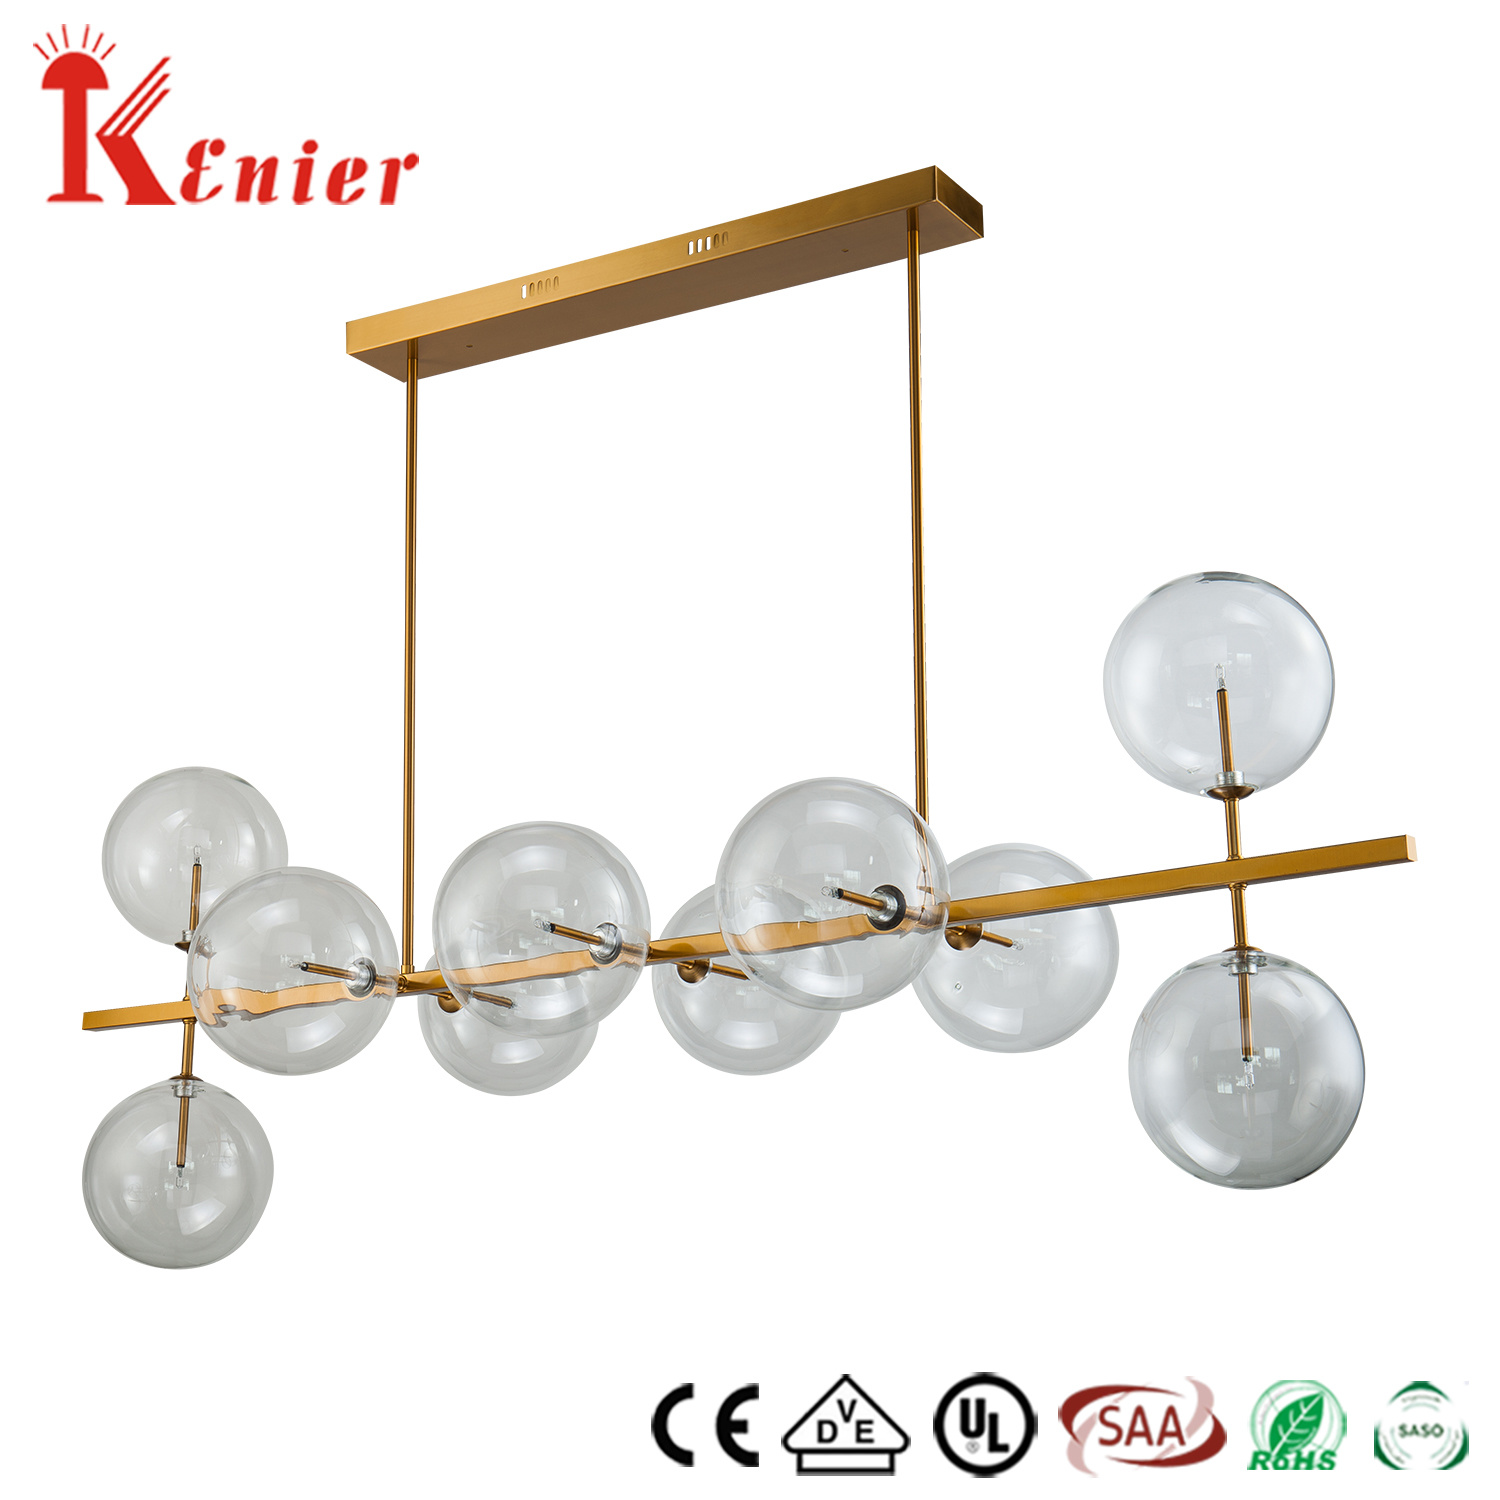 Modern Lighting Quotes Hot Item Hot Sale Restaurant Decorative Single Brass Metal Clear Glass Ball Ceiling Light Modern Pendant Lamp